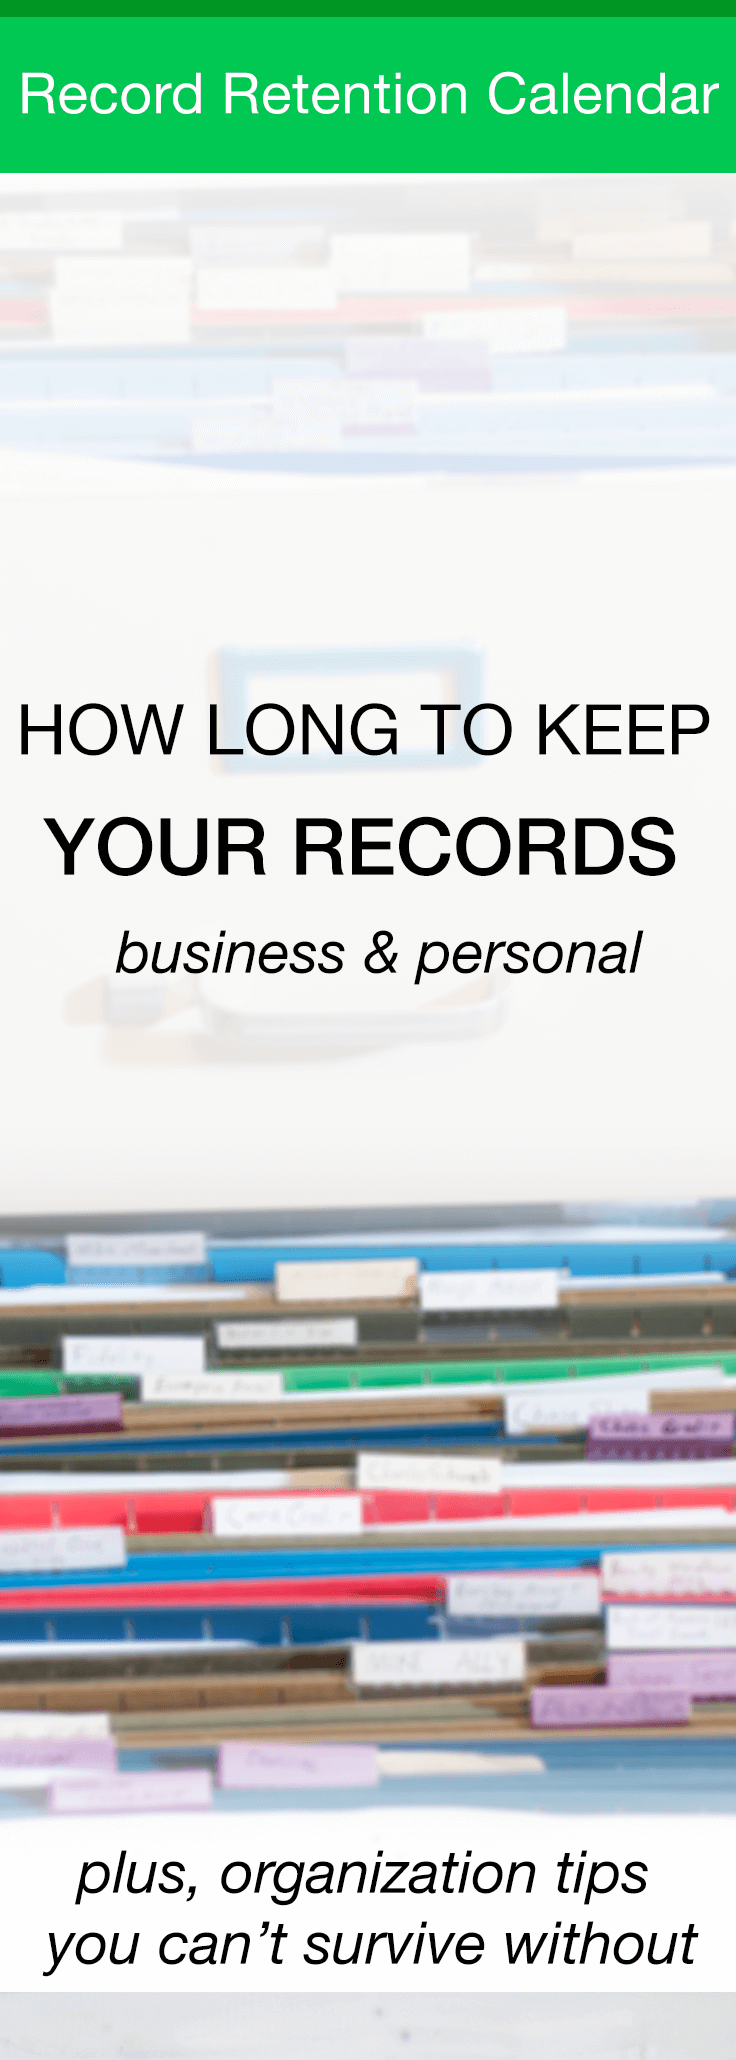 How Long To Keep Records - Personal and Business 1 This record retention schedule will guide you how long to keep records for all manners of receipts and paperwork for taxes. Organized by length of time to